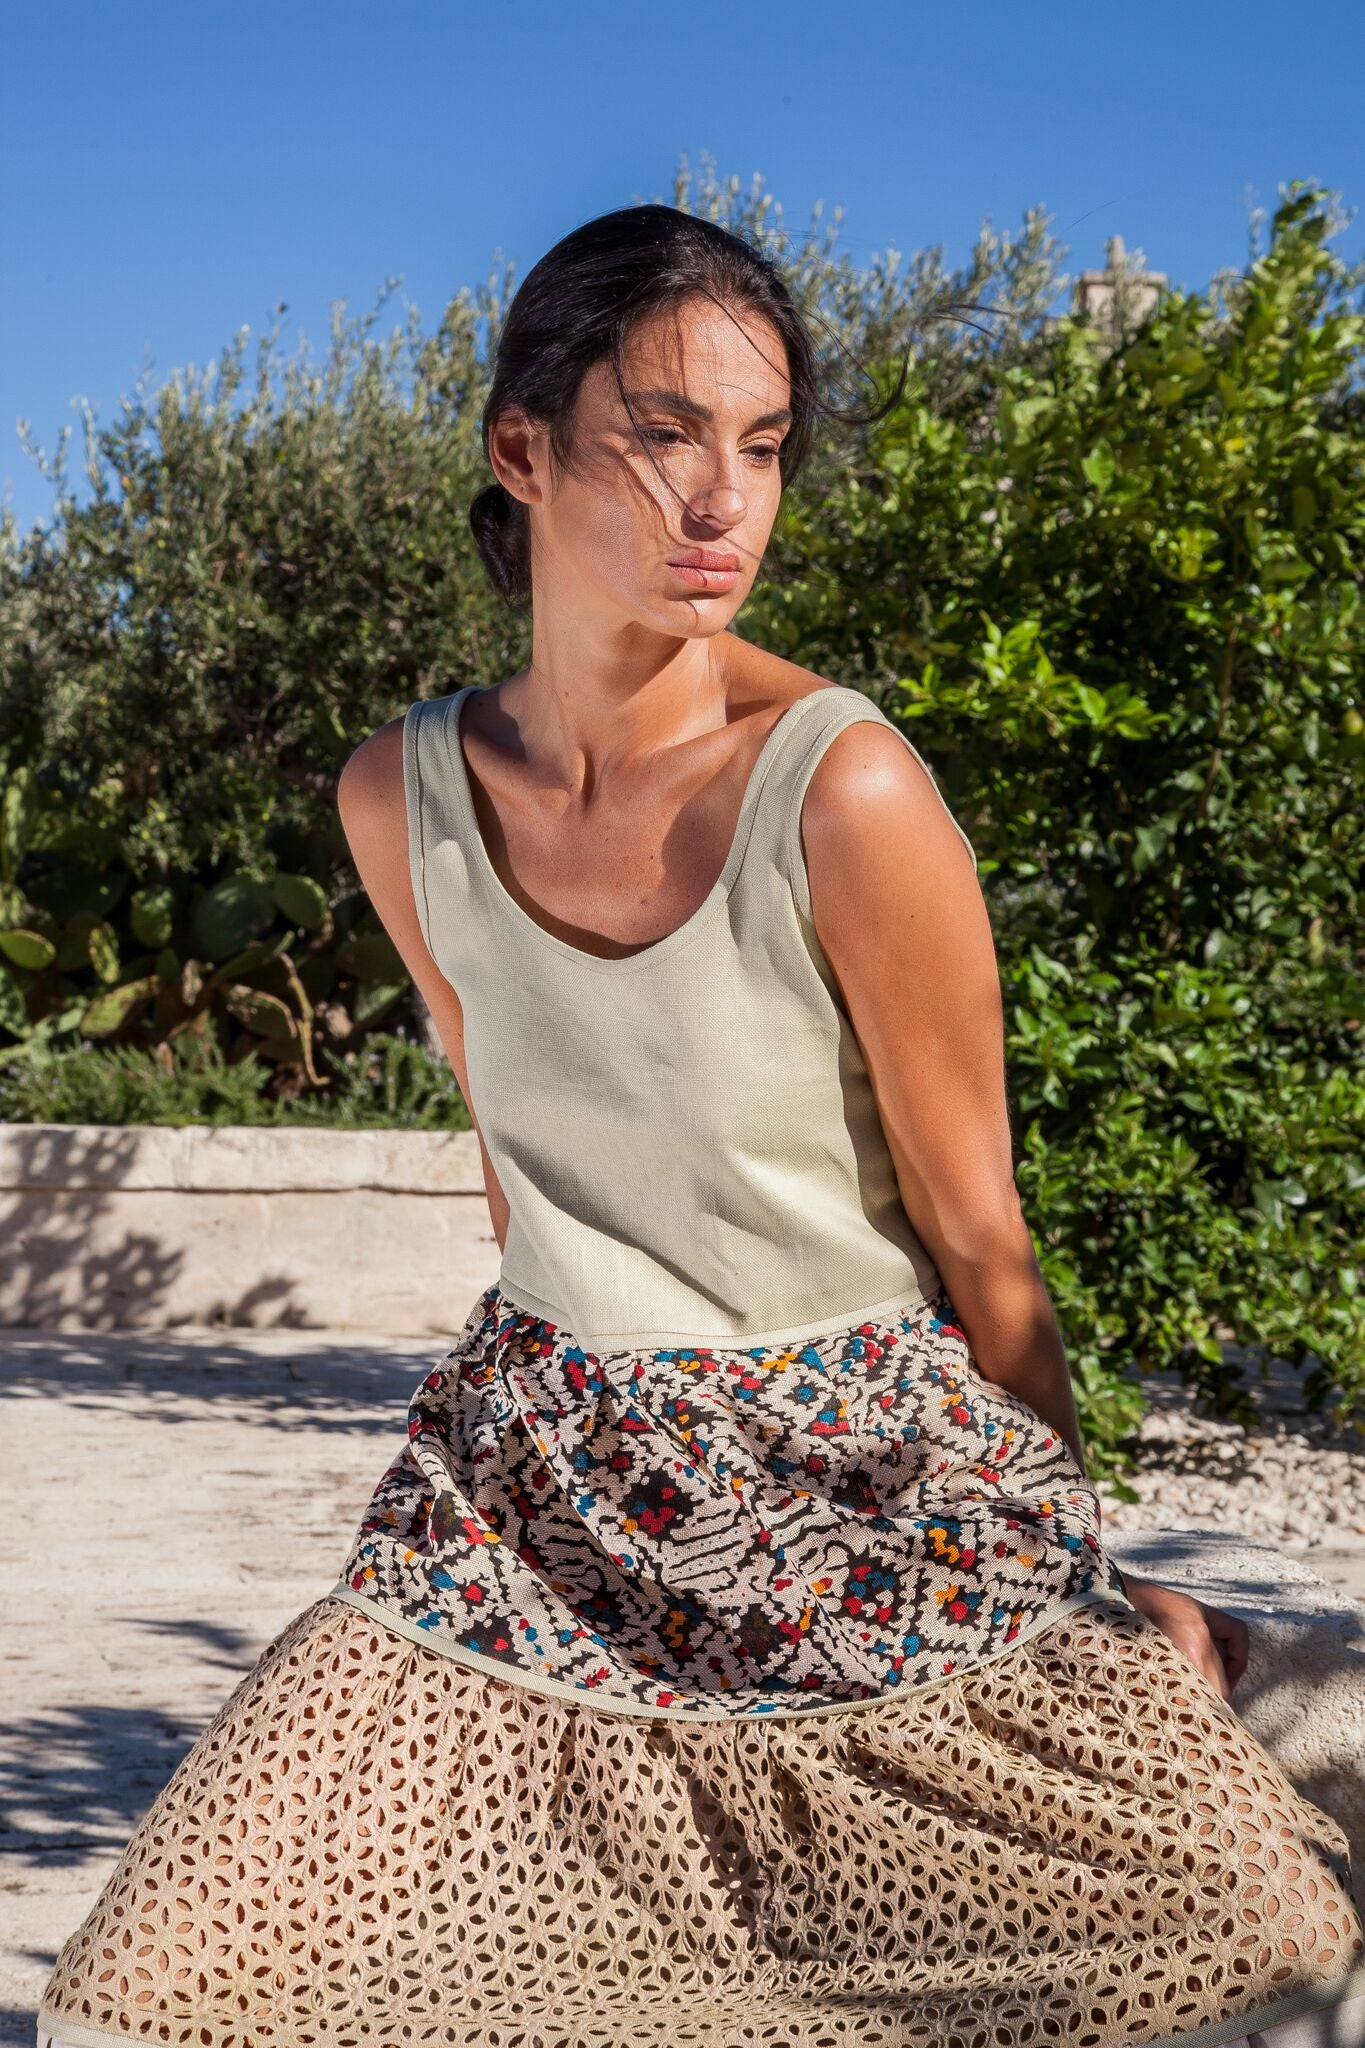 DANIELA DUBAI - Artisanal Cotton Dress - Natural Rough